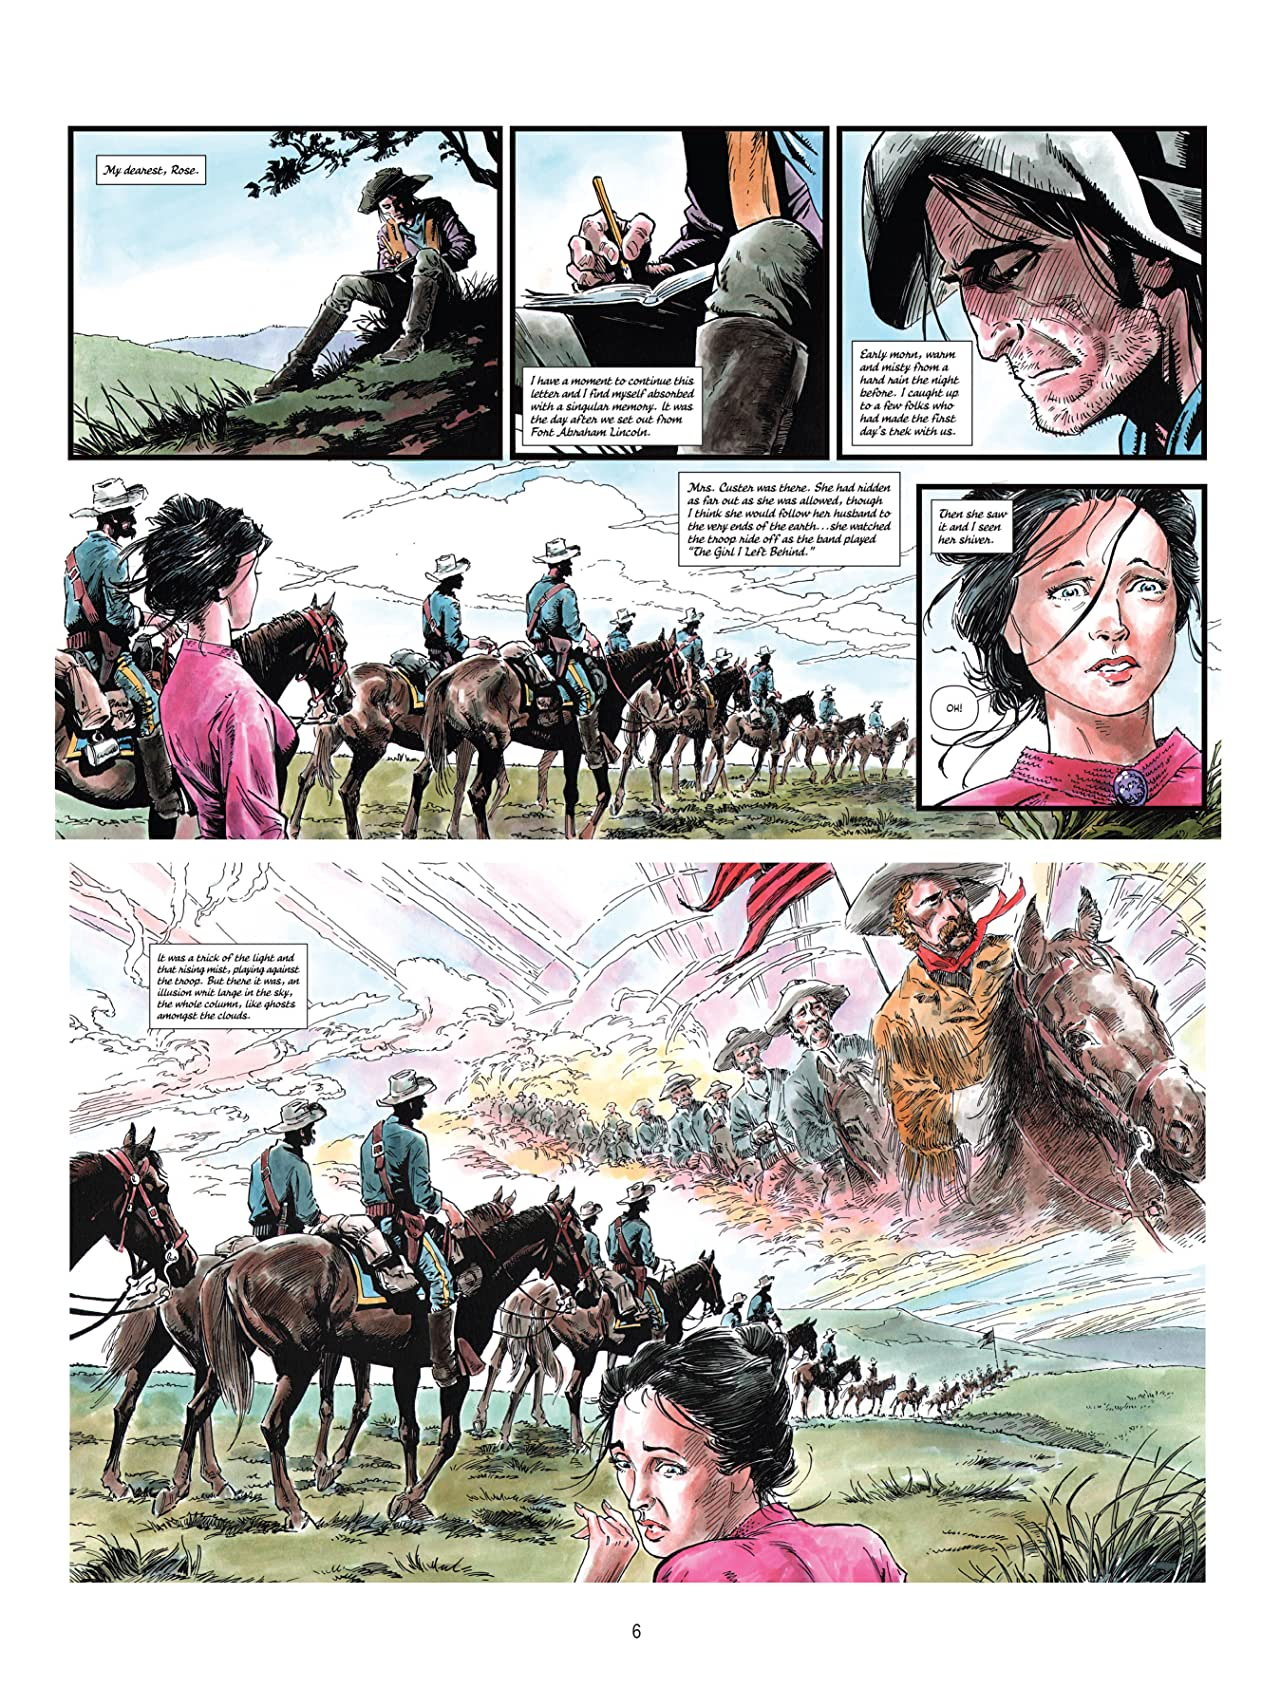 Of Dust & Blood, The Battle at Little Big Horn